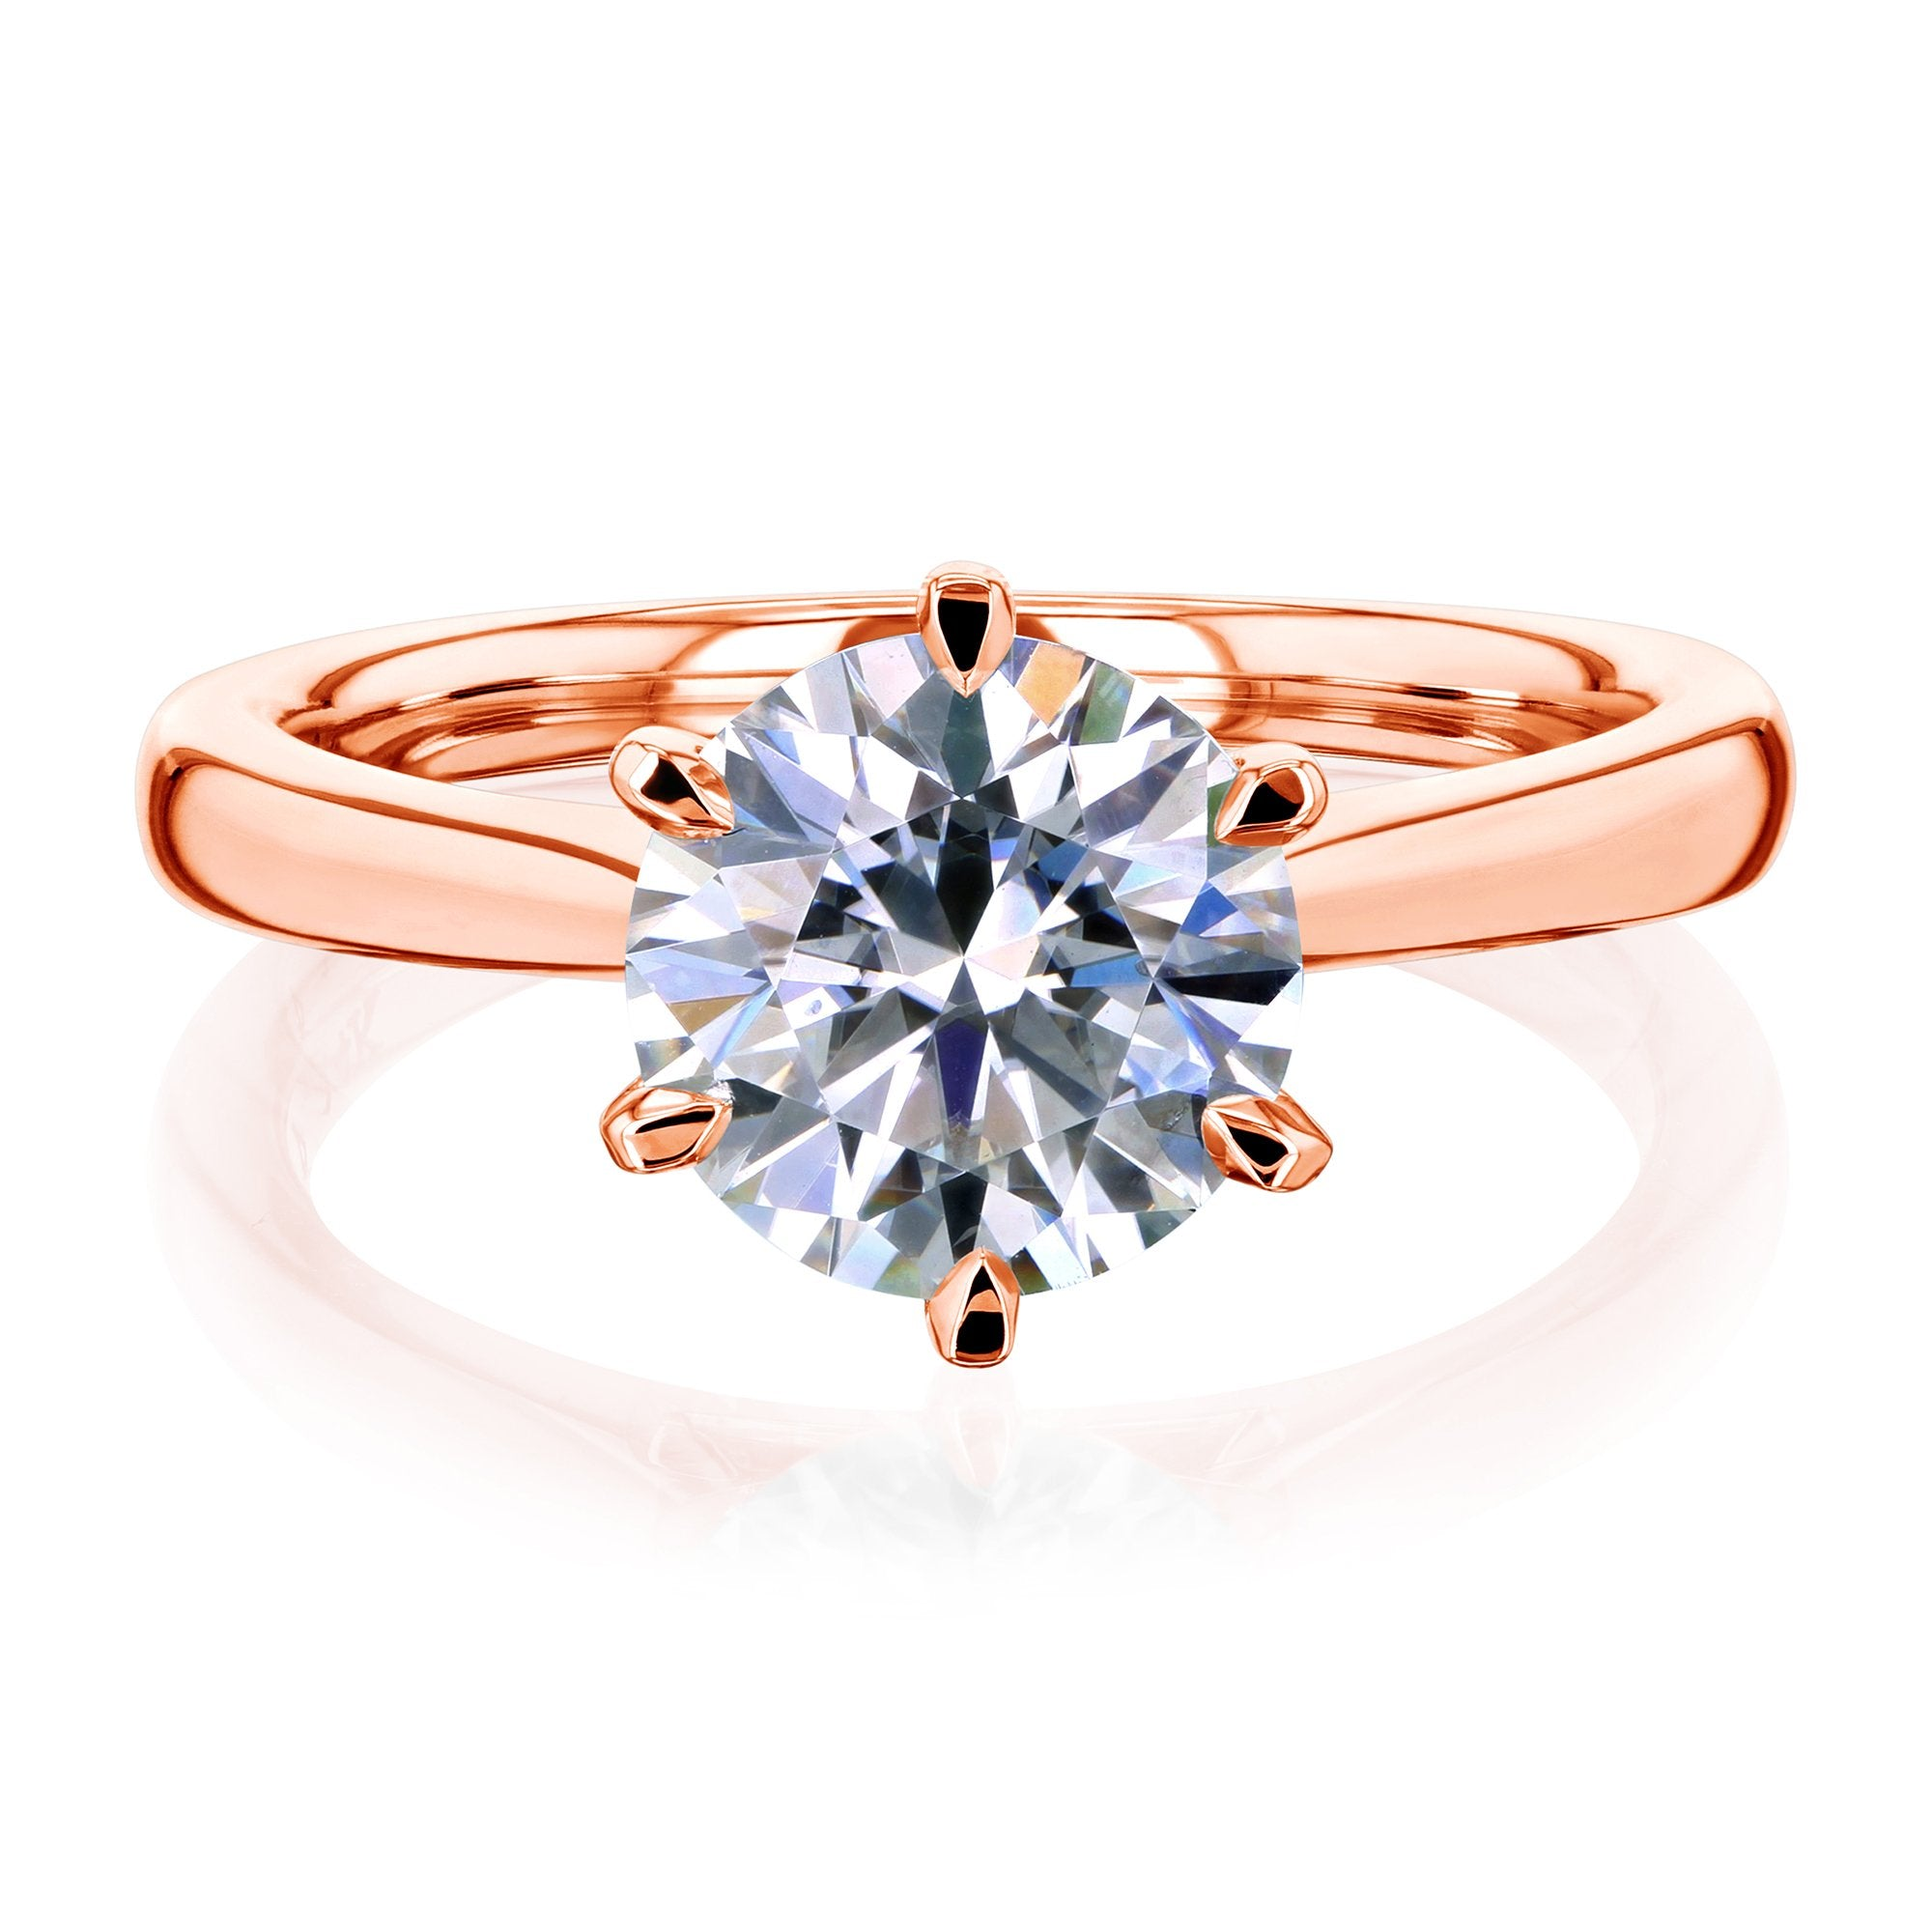 Coupons 1.9ct Round Moissanite 6-Prong Ring - rose-gold 9.0 Kobelli H-I